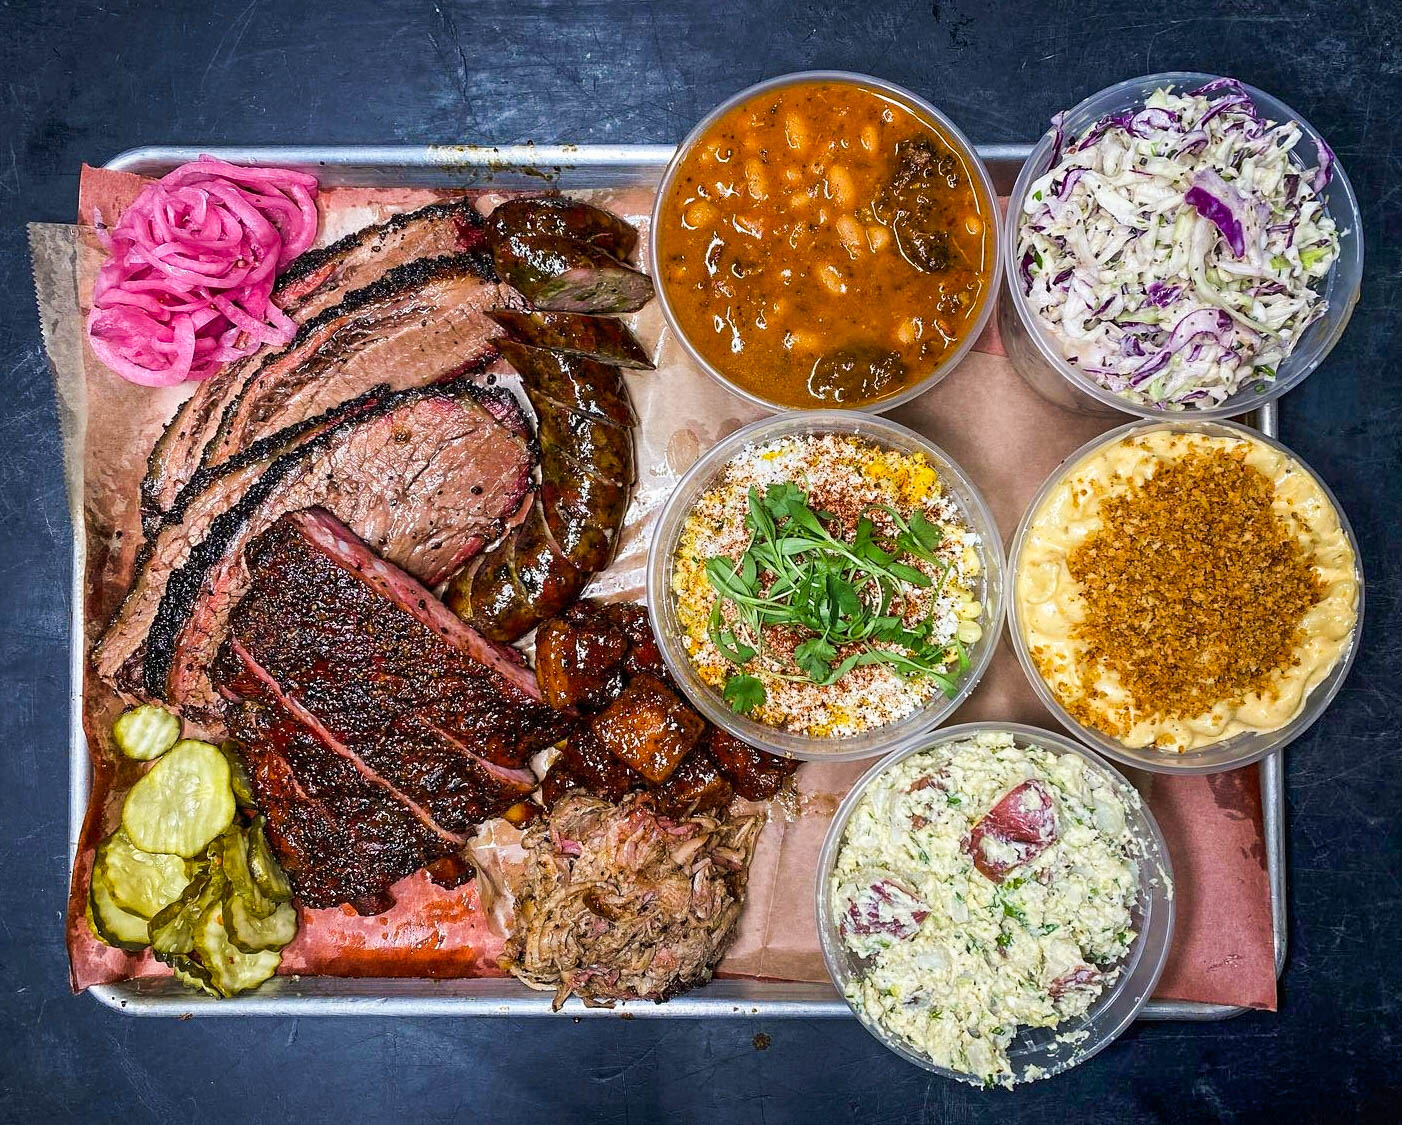 platter of barbecue and sides from Moo's Craft Barbecue